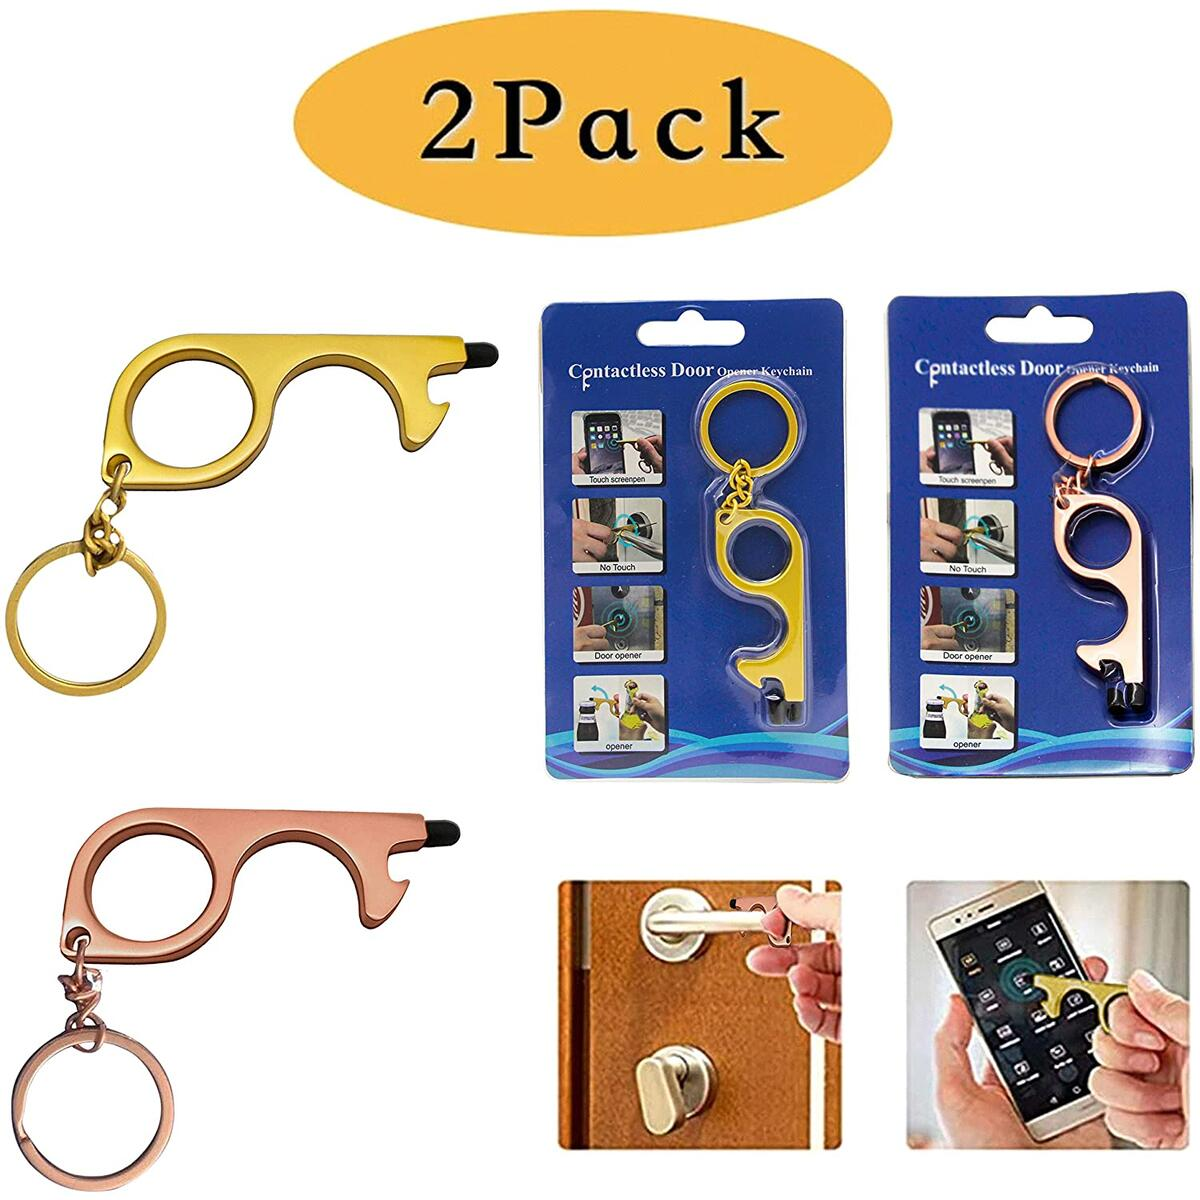 No Touch Door Opener No touch door opener Tool Handheld EDC Keychain Tool For Surfaces Closer Contactless Safety Door Opener Smart Key Tool Touchscreens AB&T 2 Pack (Gold Pink)